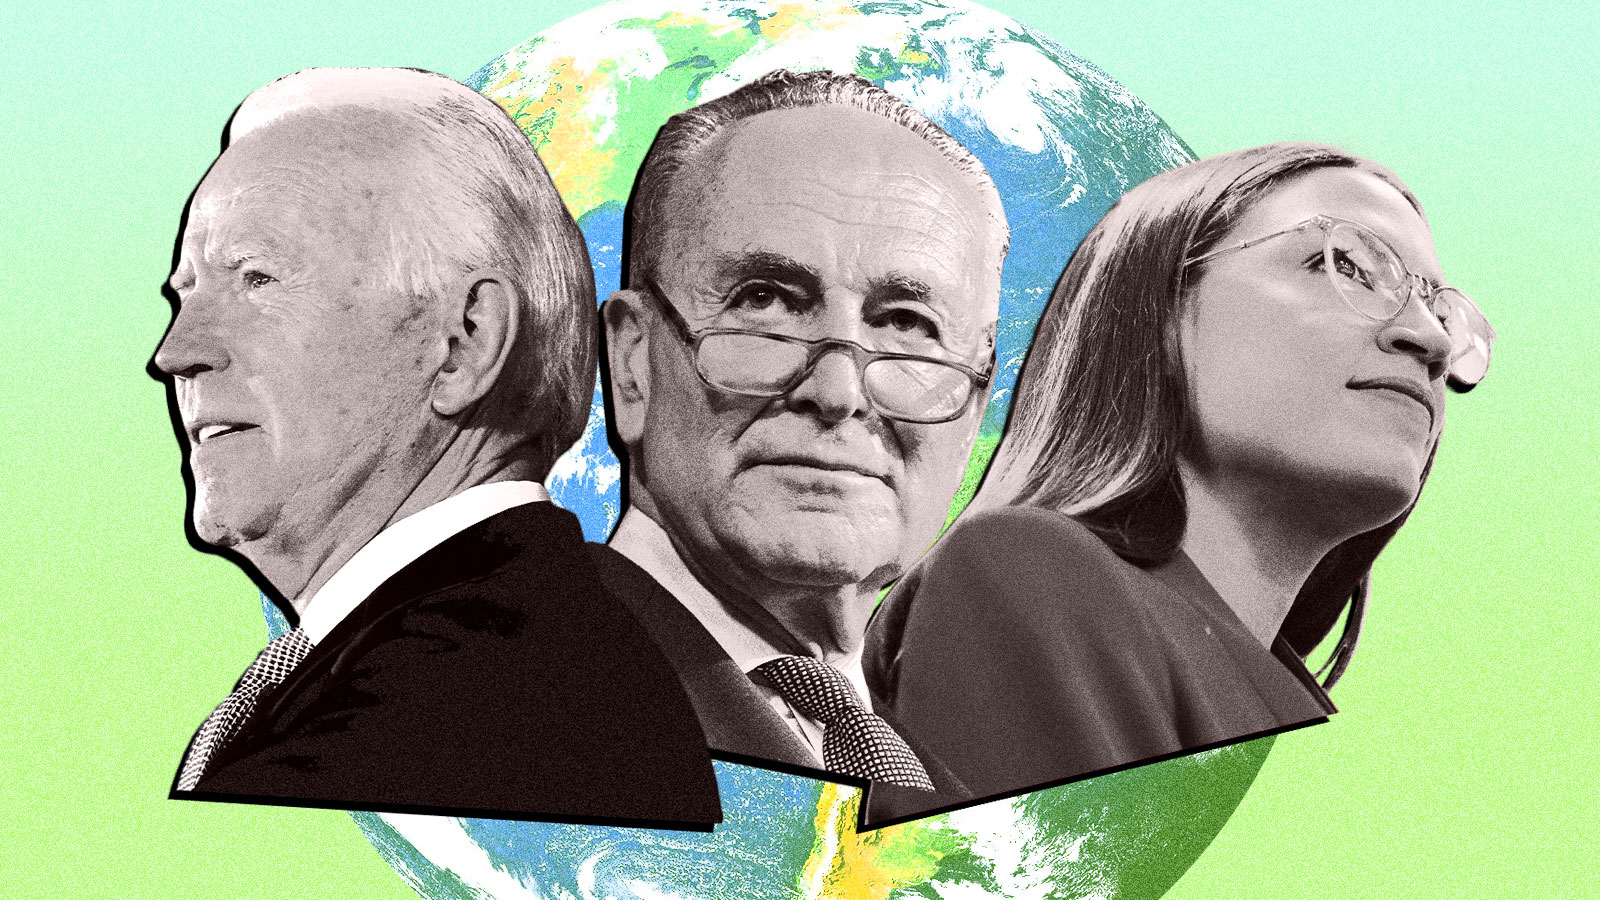 Joe Biden, Chuck Schumer, and Alexandria Ocasio-Cortez are among those pushing for climate plans that may require getting rid of the filibuster.